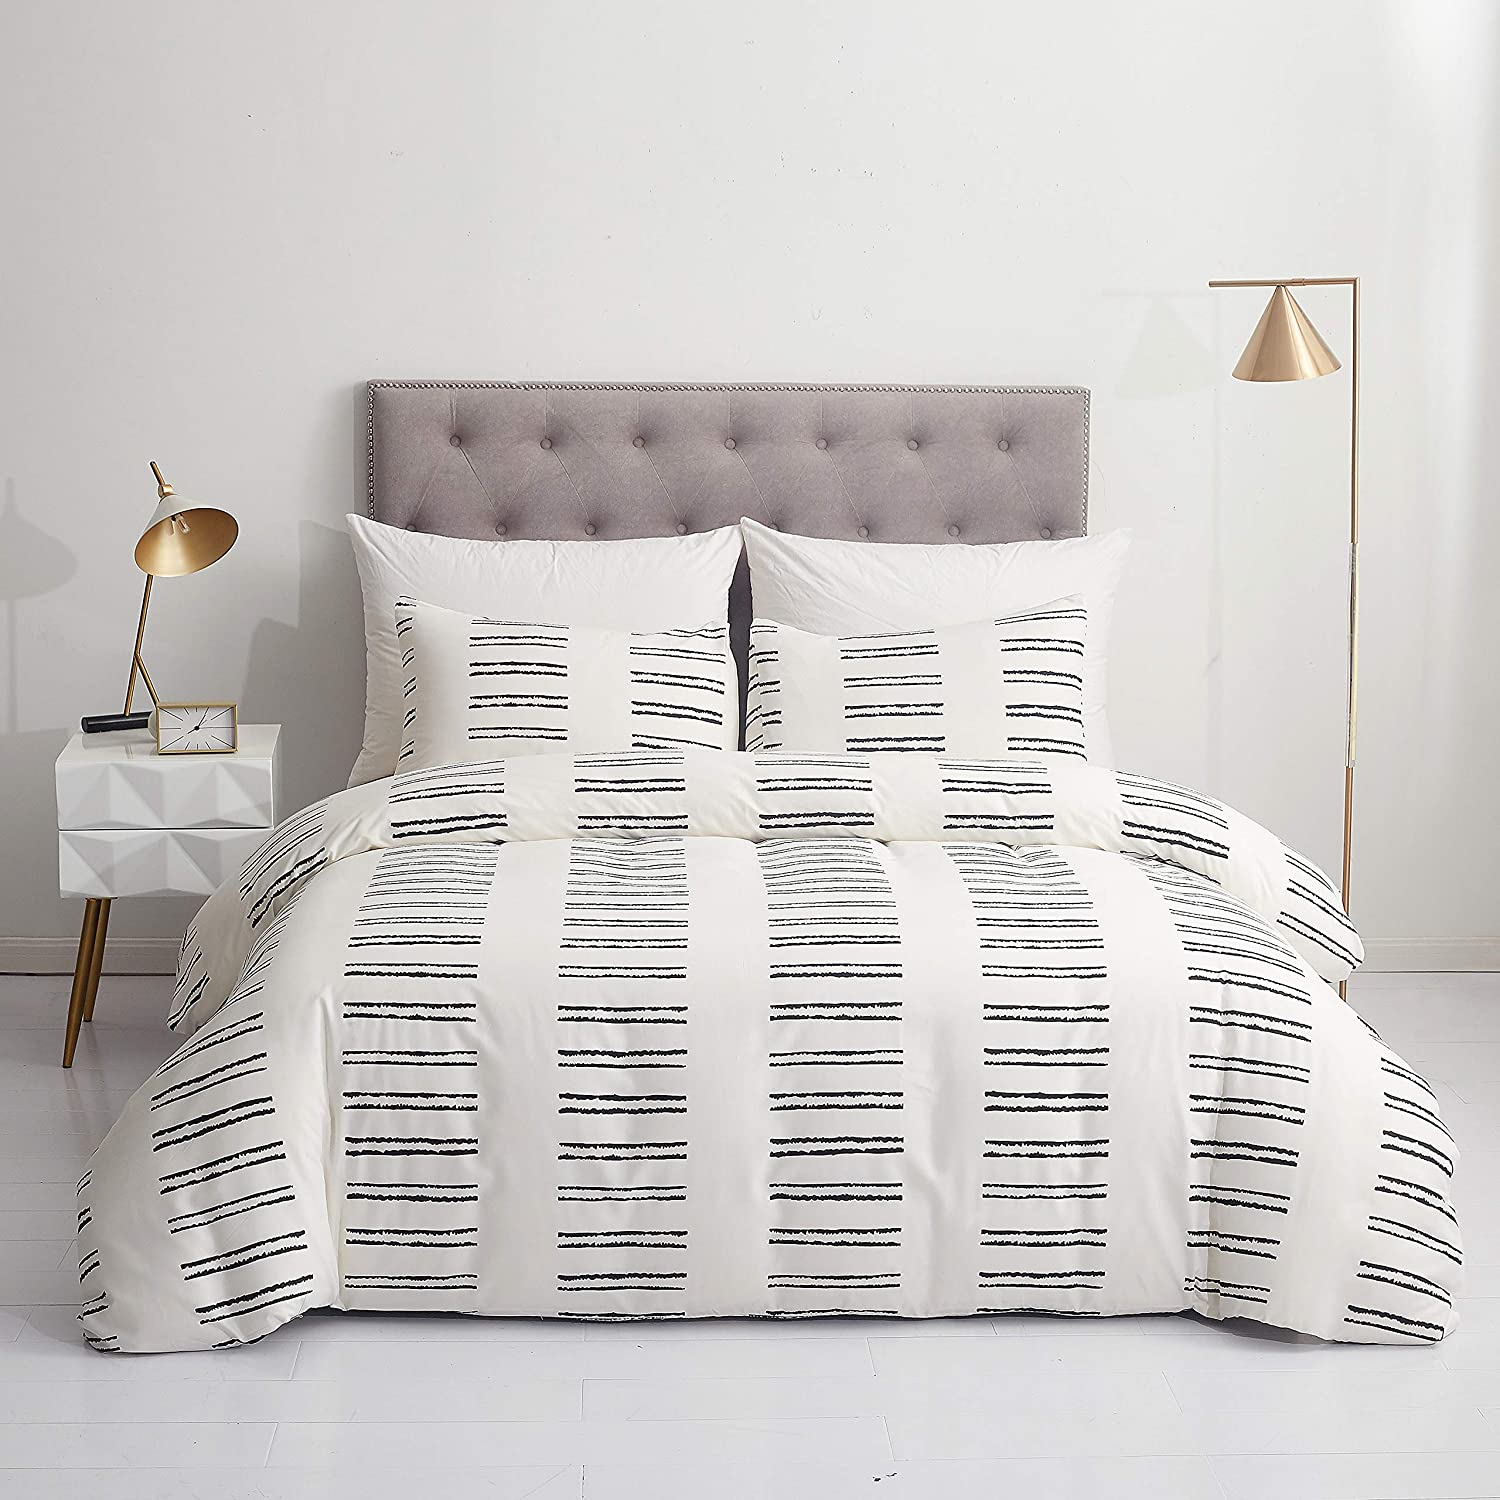 """GETIANN Soft Bedding Duvet Cover Set Queen White Striped Comforter Cover Set Full 90""""x90""""(1 Comforter Cover and 2 Pillow Shams) Hotel Quality (Road, Full/Queen) : Home & Kitchen"""